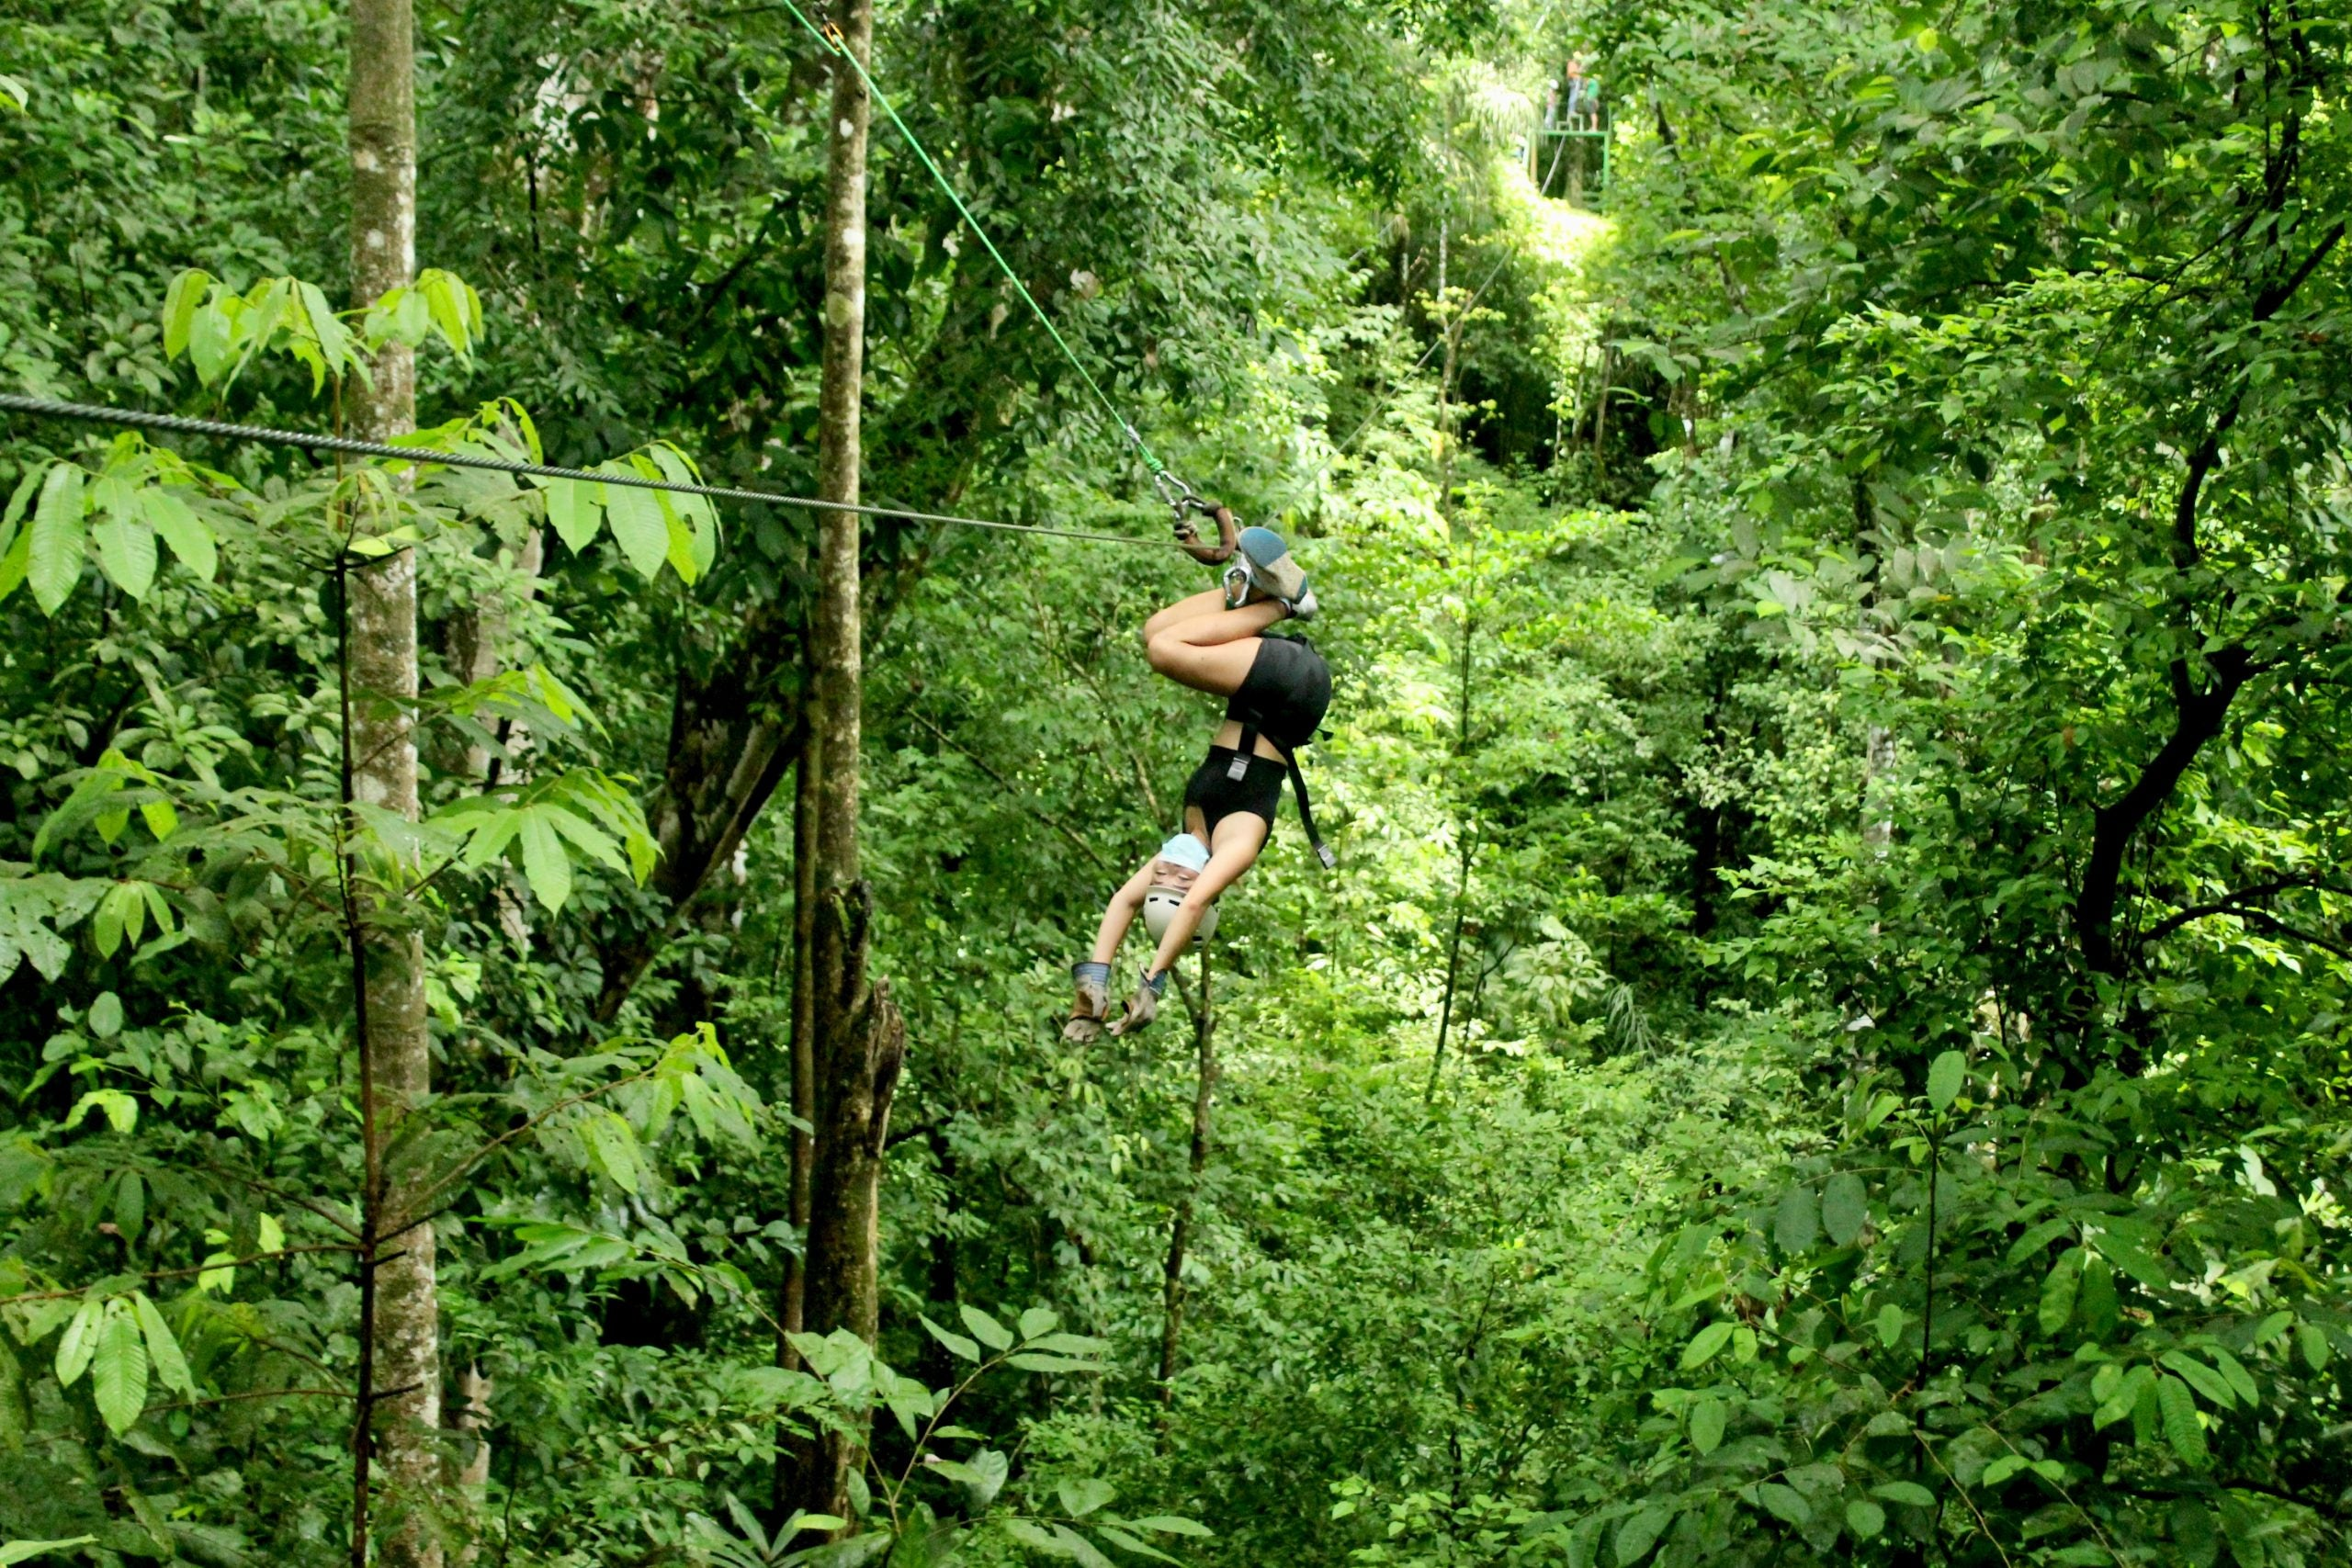 Welcome to the jungle: How I redeemed 100,000 Chase points to book a Costa Rica trip of a lifetime - The Points Guy